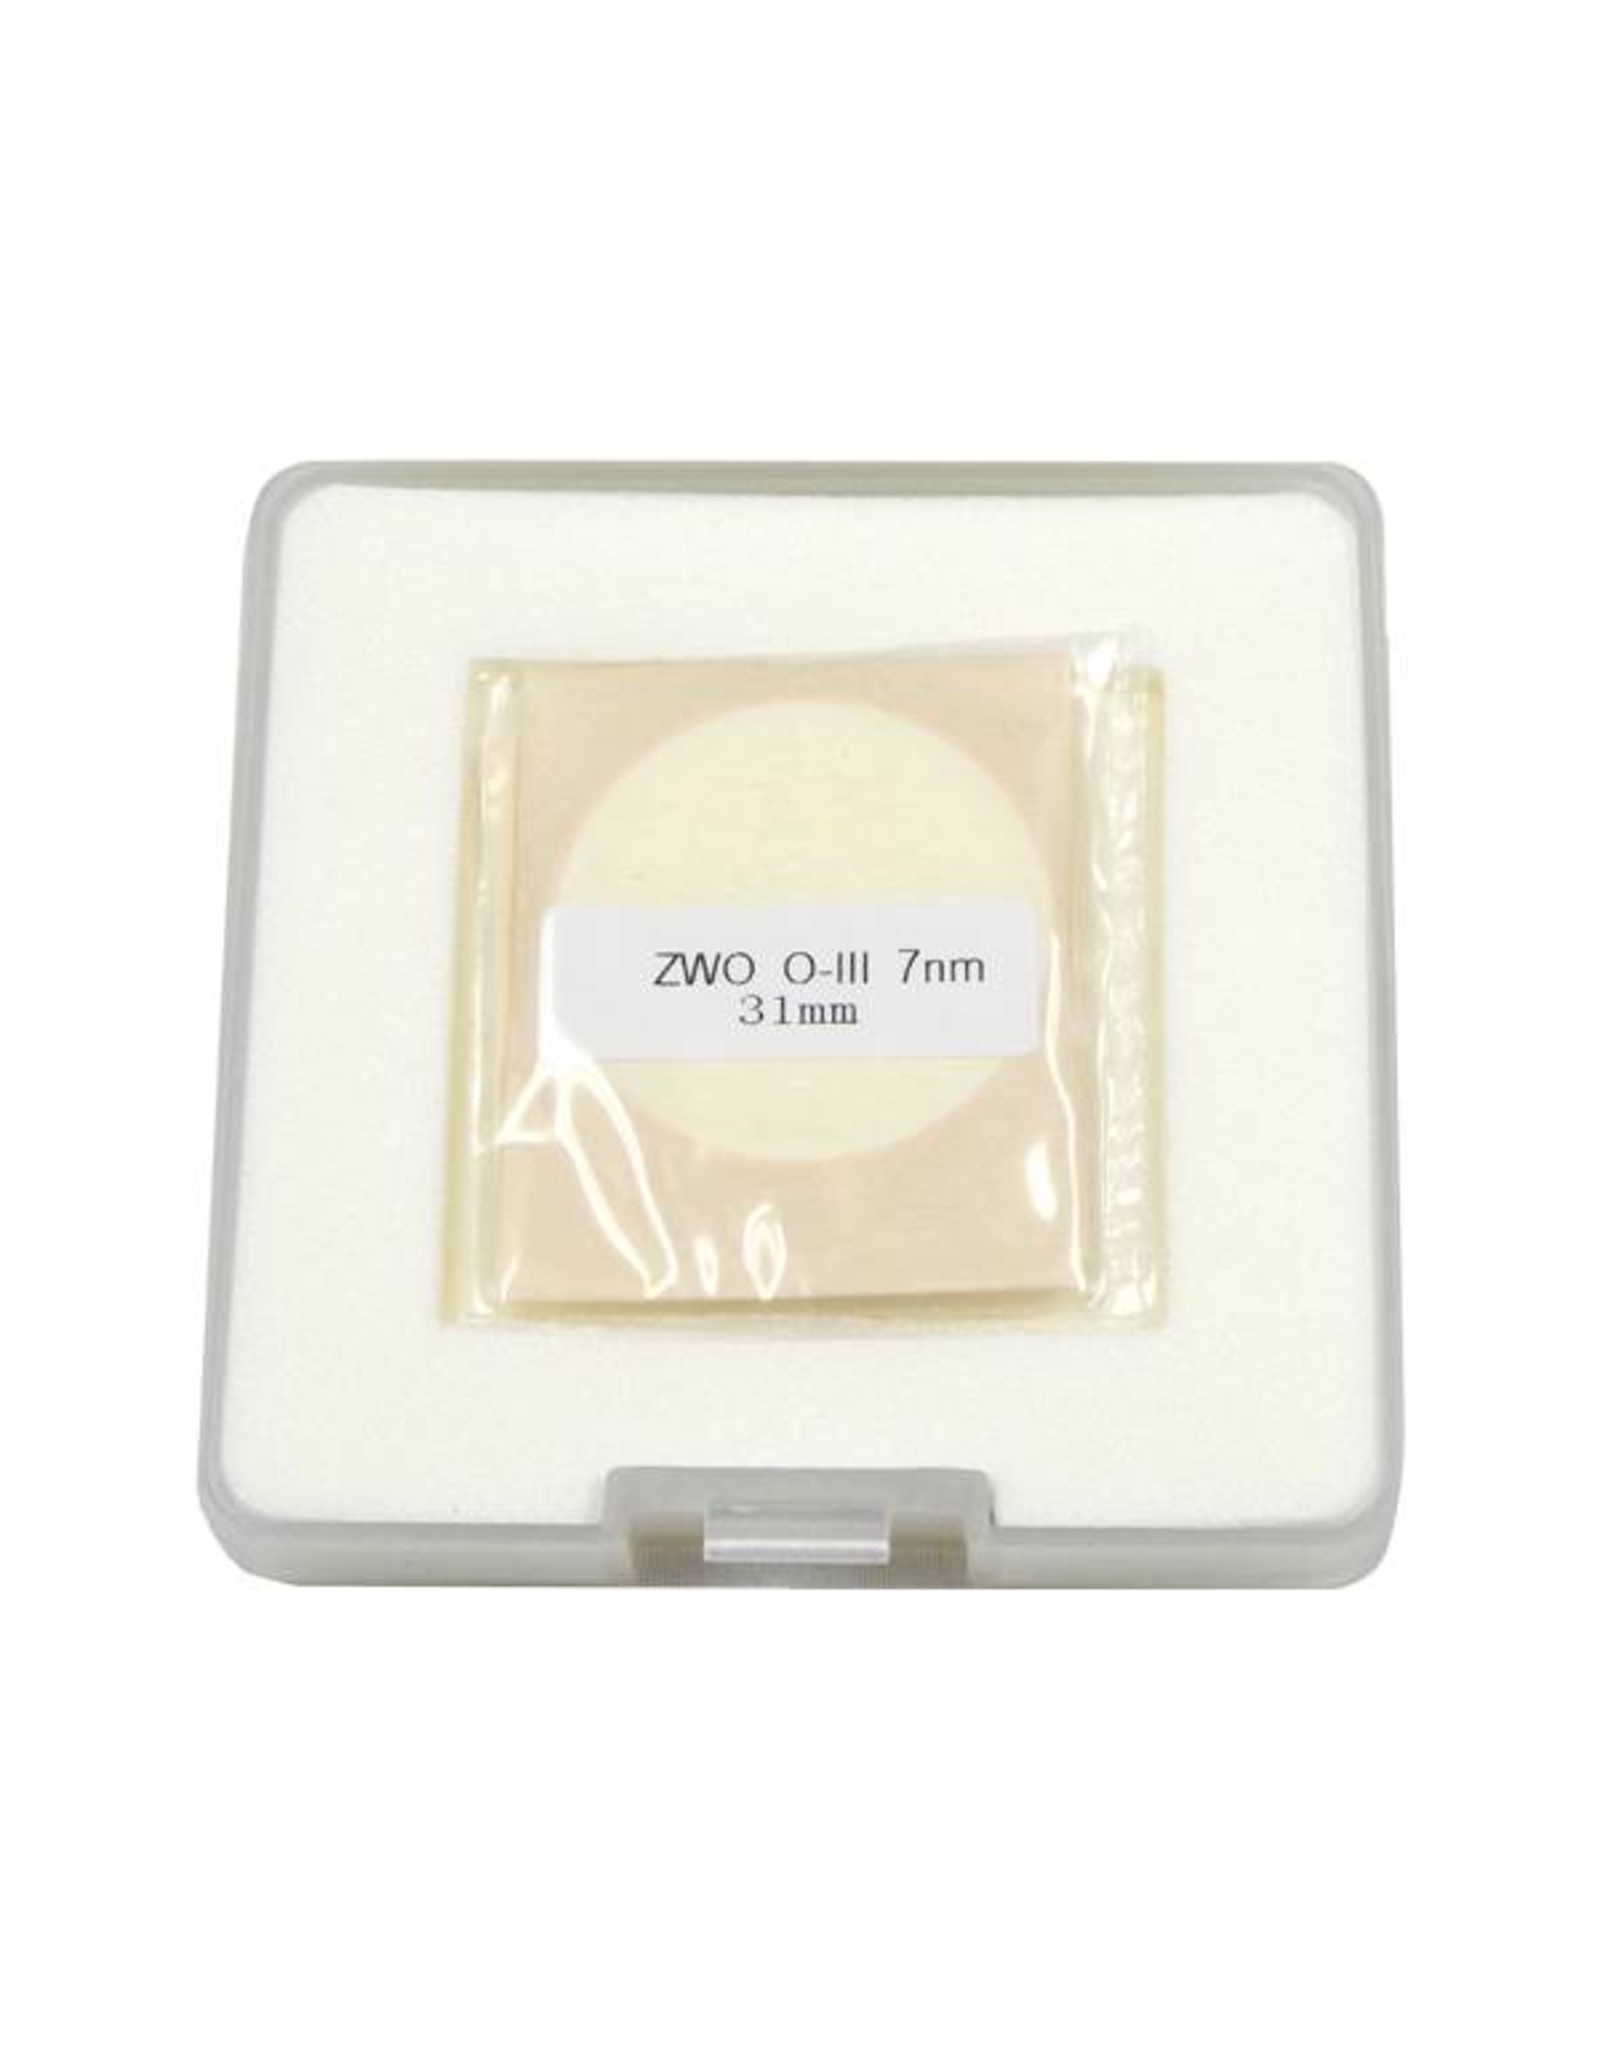 ZWO ZWO 31mm Narrowband Filters - OIII, Ha, SII